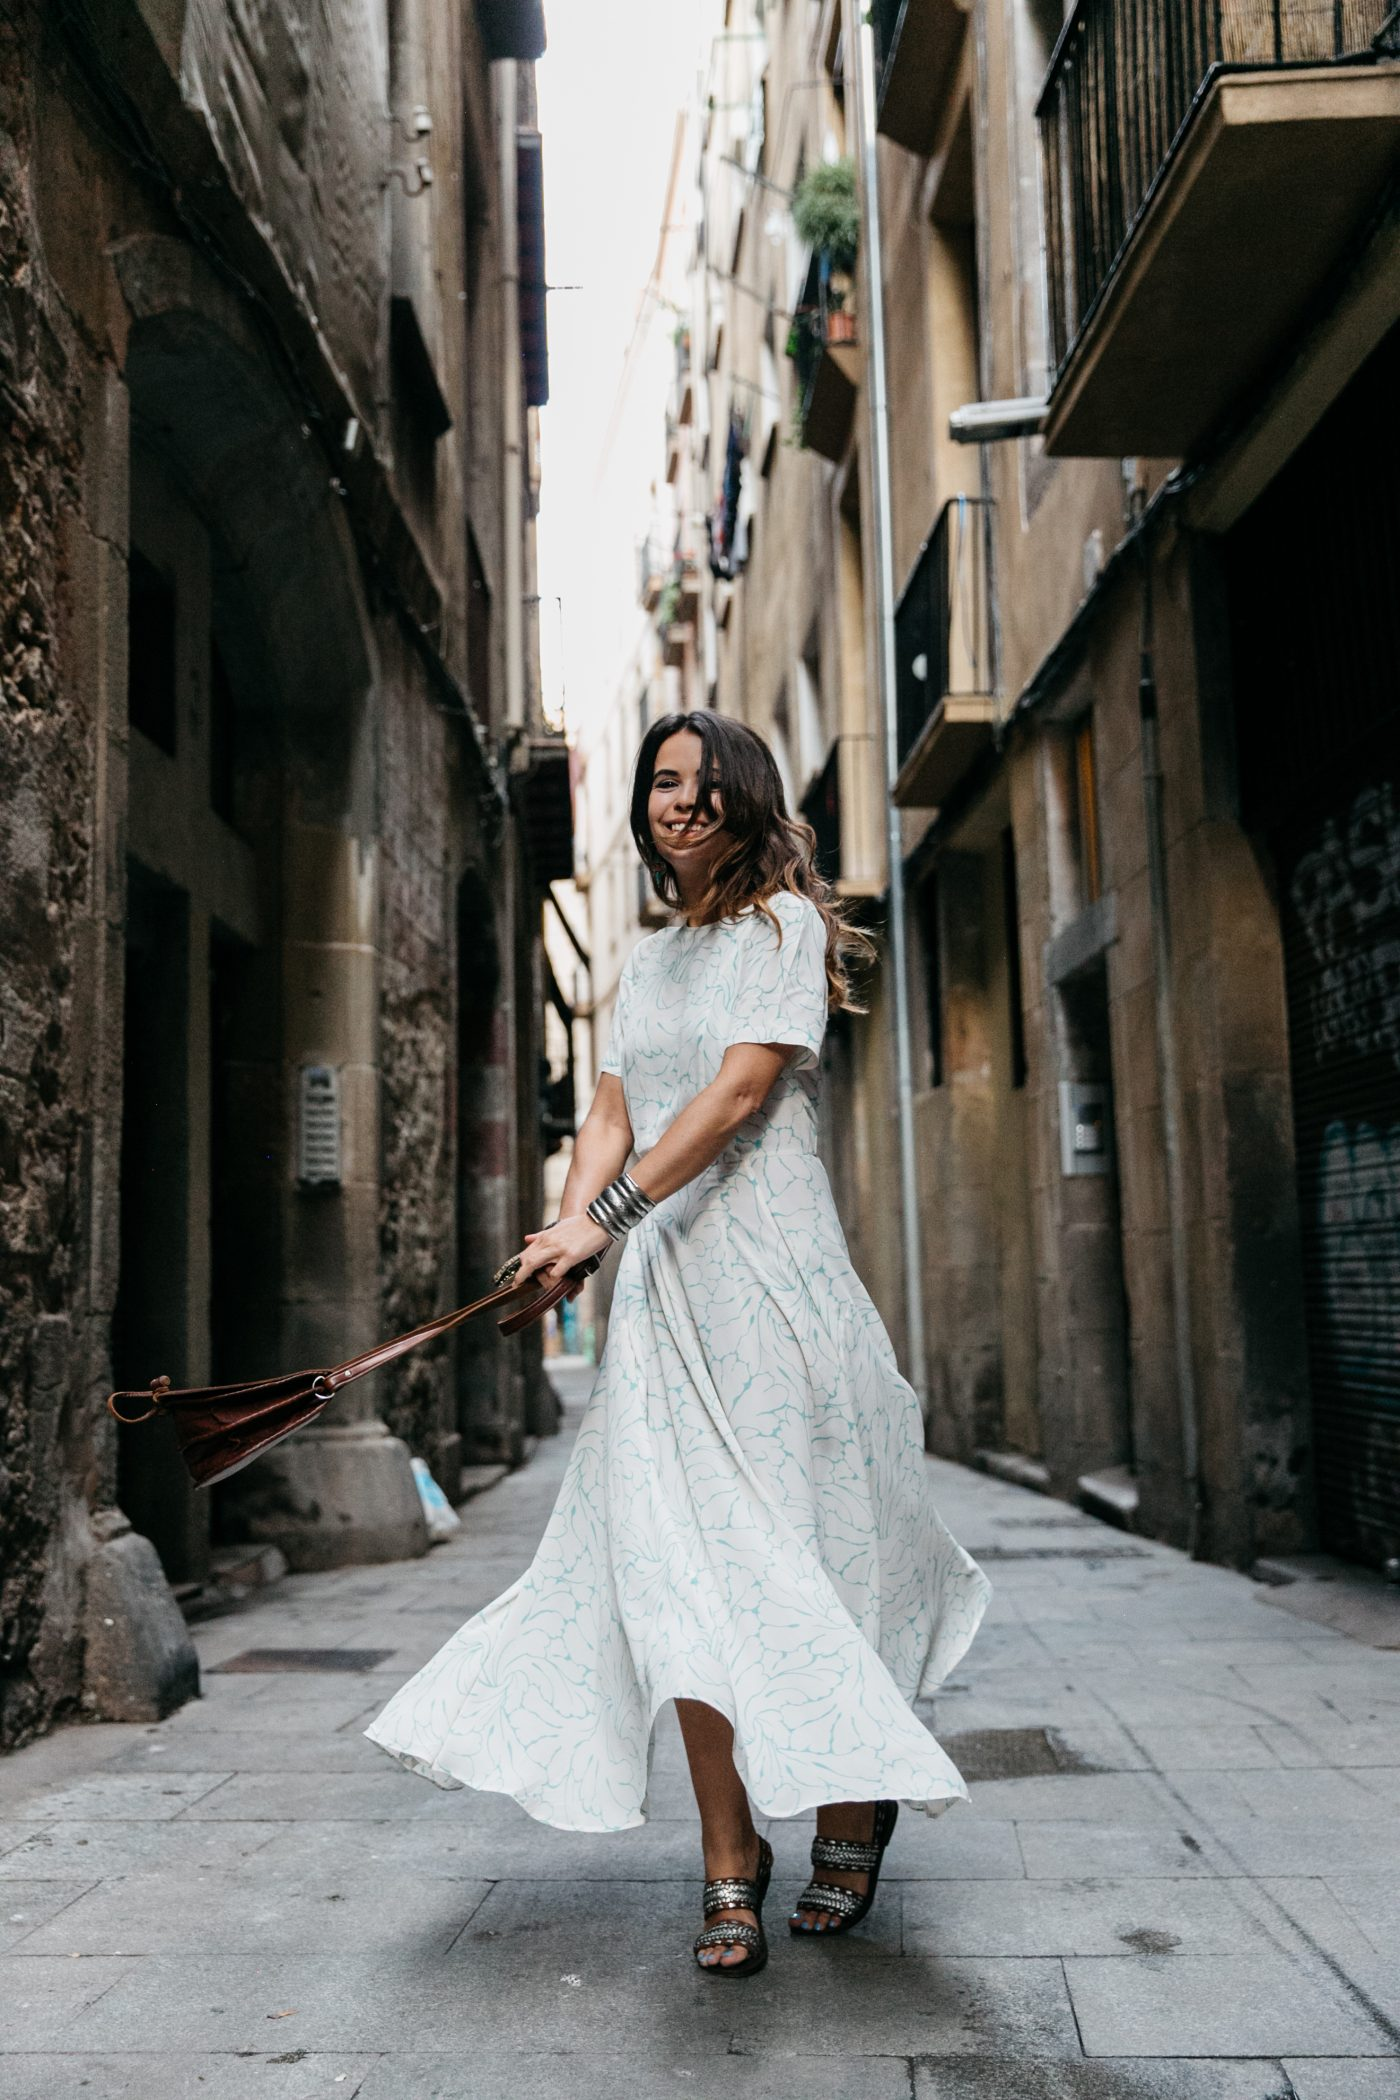 Long_Dress-HM_Leather_Bag-Maje_Sandals-Outfit-Primavera_Sound-Collage_Vintage-Street_Style-33